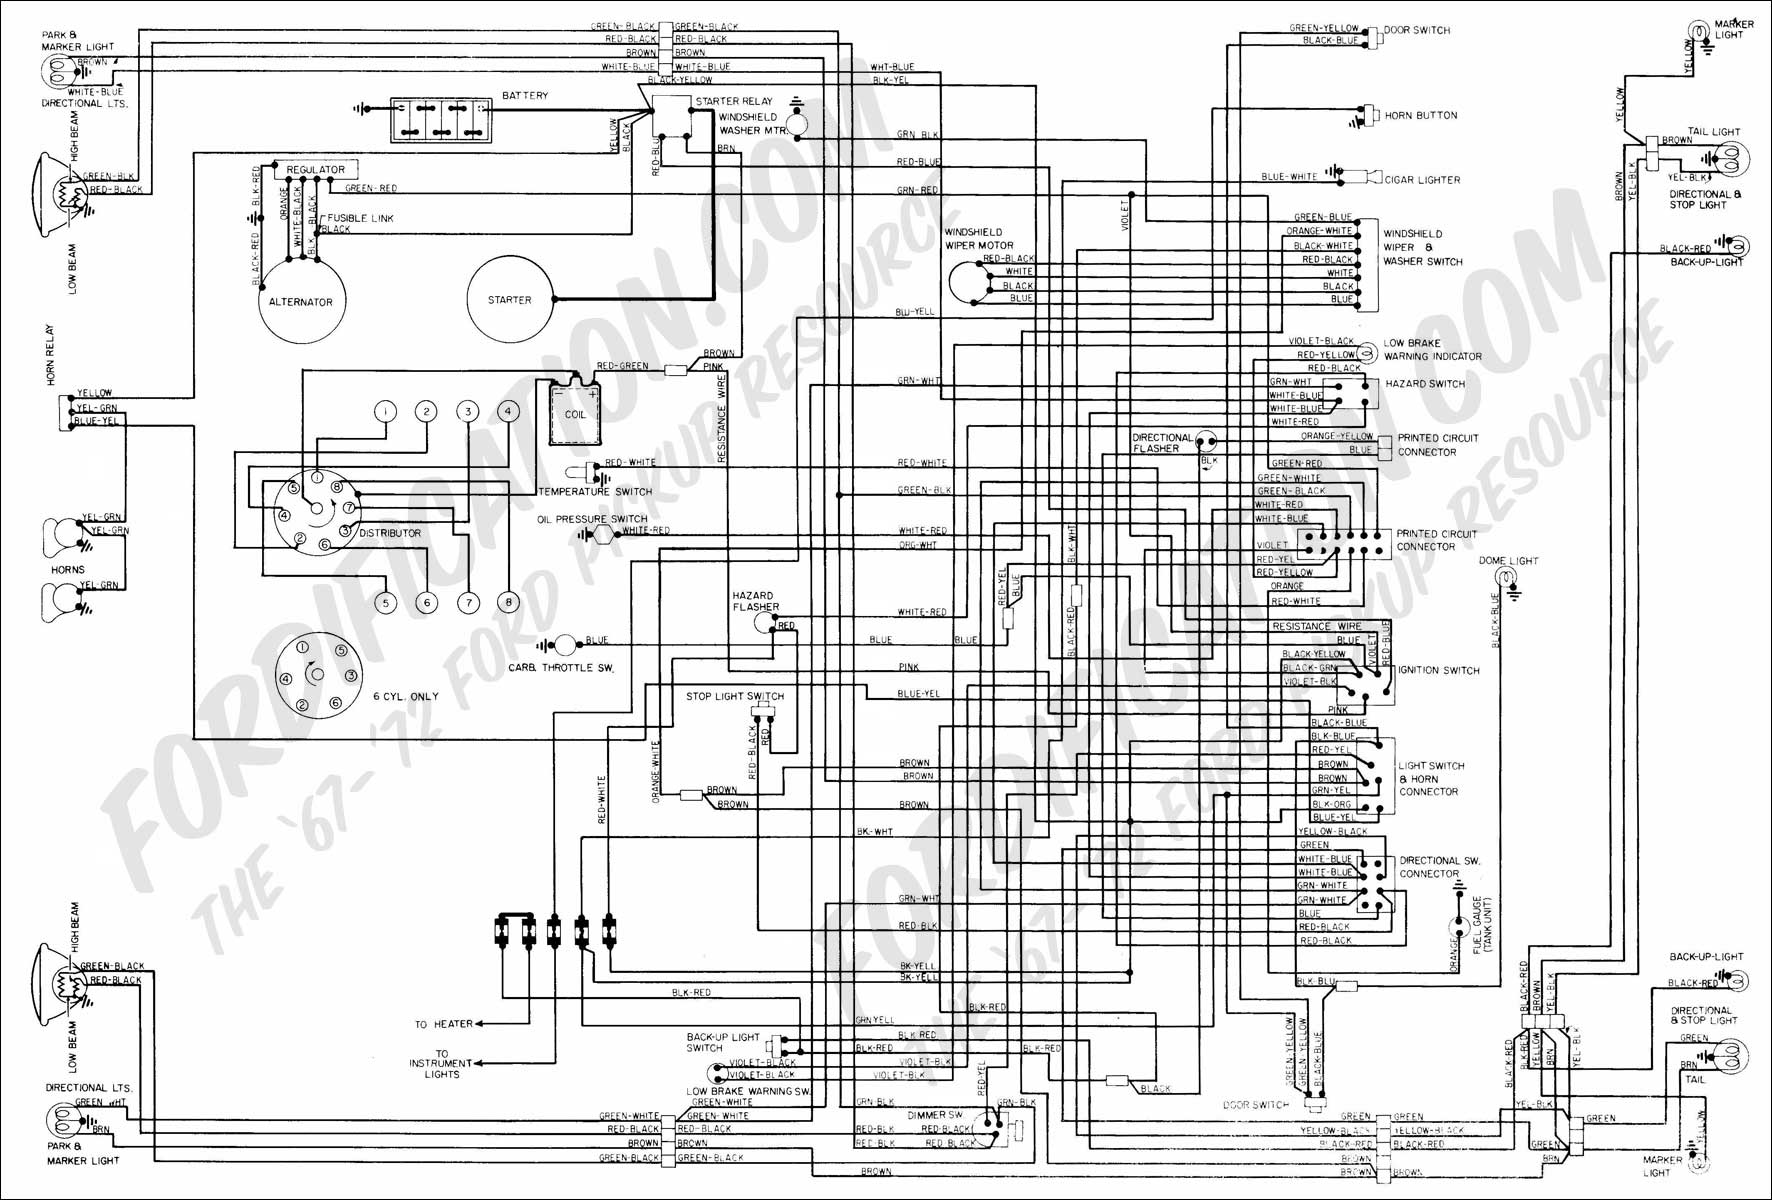 Incredible 1997 Ford L8000 Wiring Diagram Today Diagram Data Schema Wiring Cloud Rineaidewilluminateatxorg